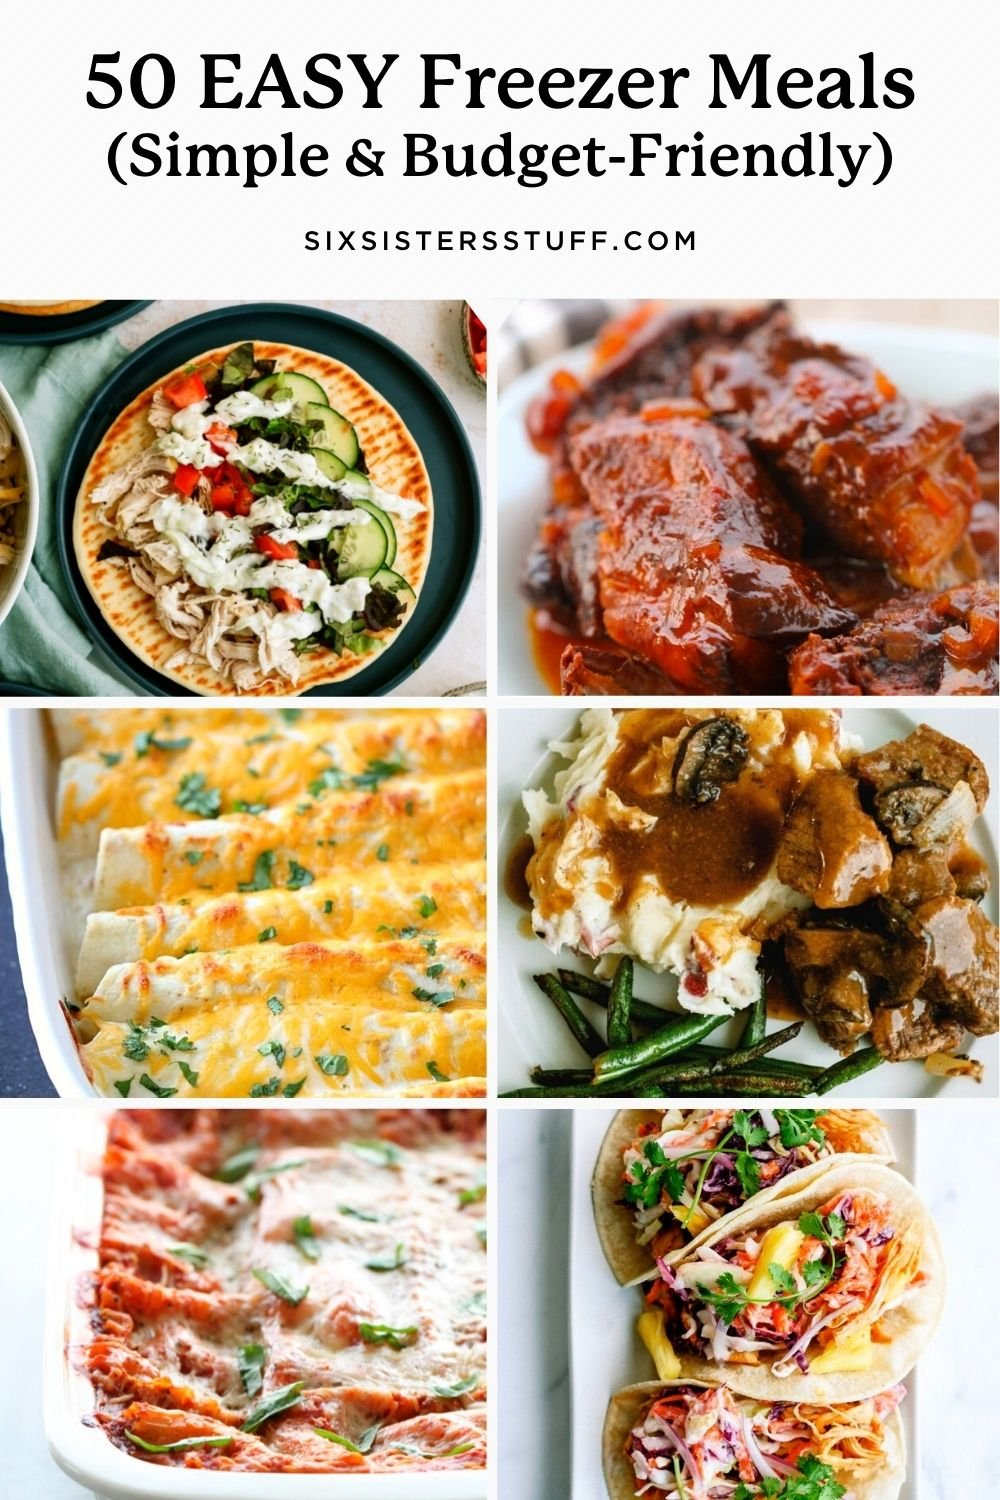 50 Delicious and Easy Freezer Meal (Simple and Budget-Friendly) Recipes